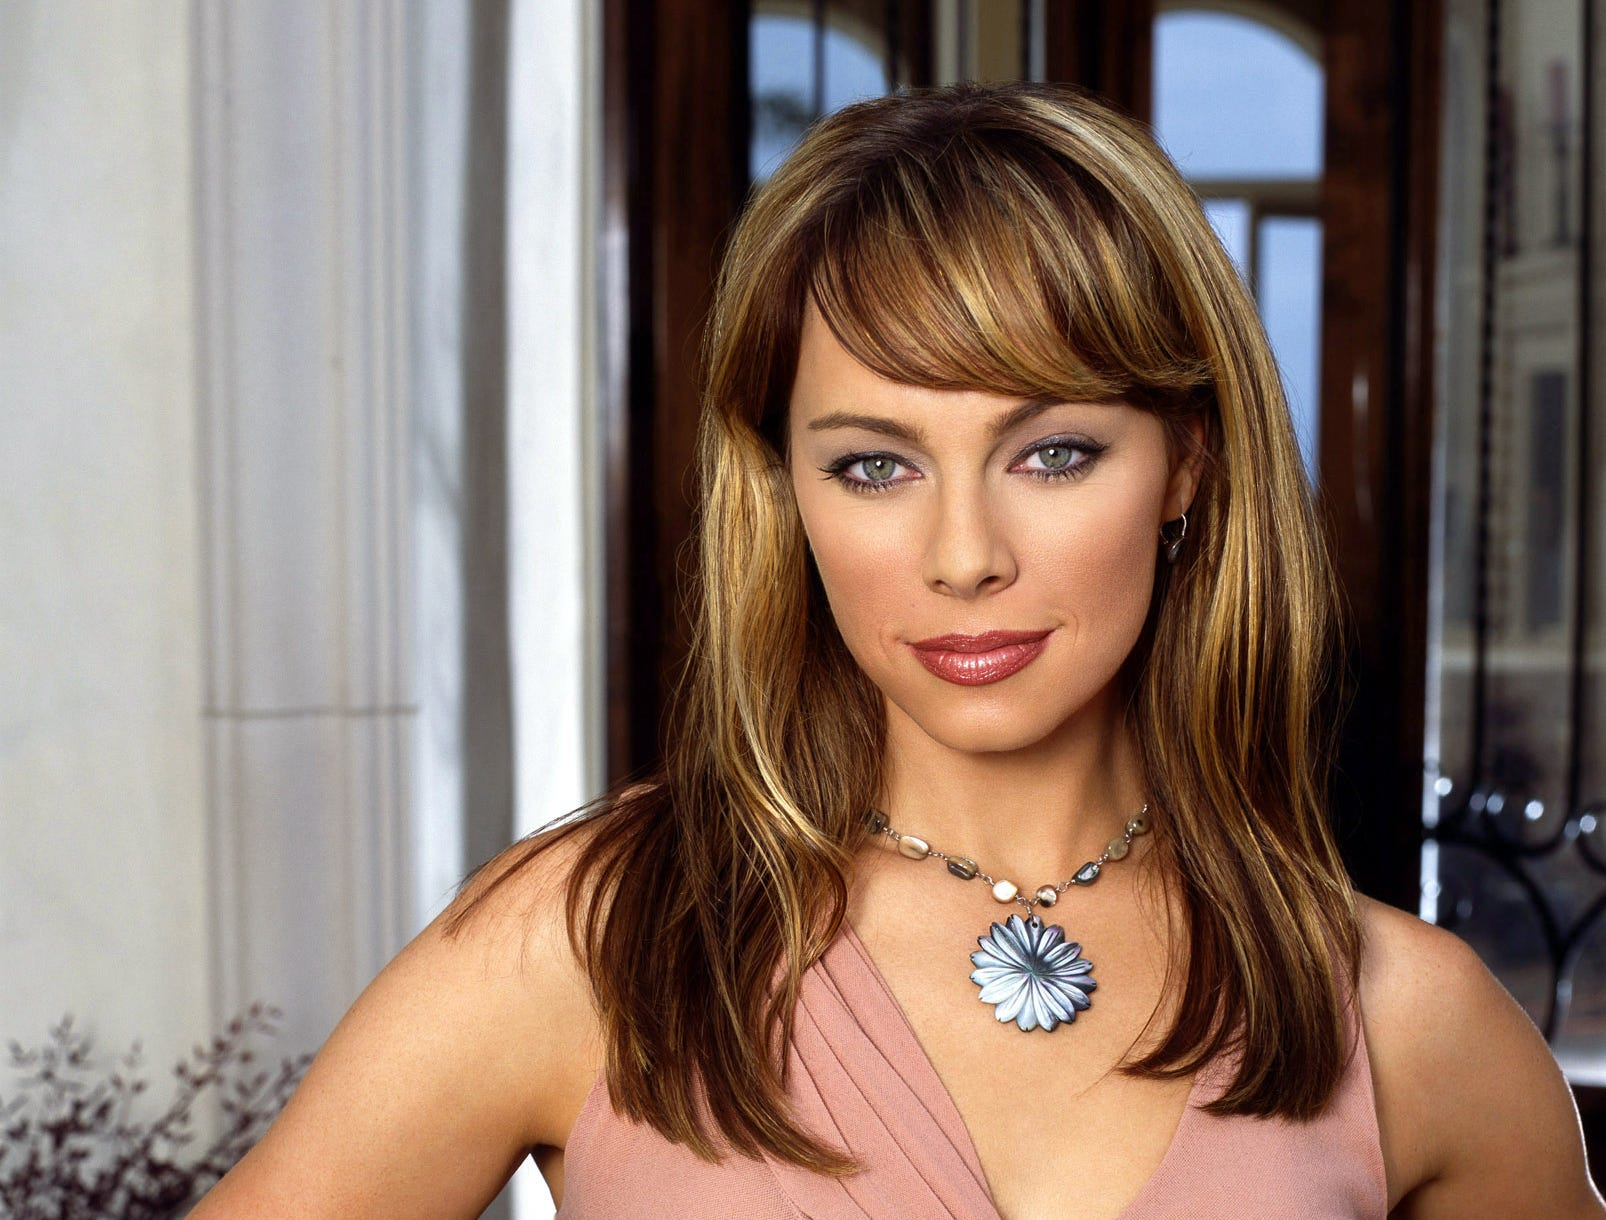 Melinda Clarke was Julie, the superficial socialite married to Jimmy.